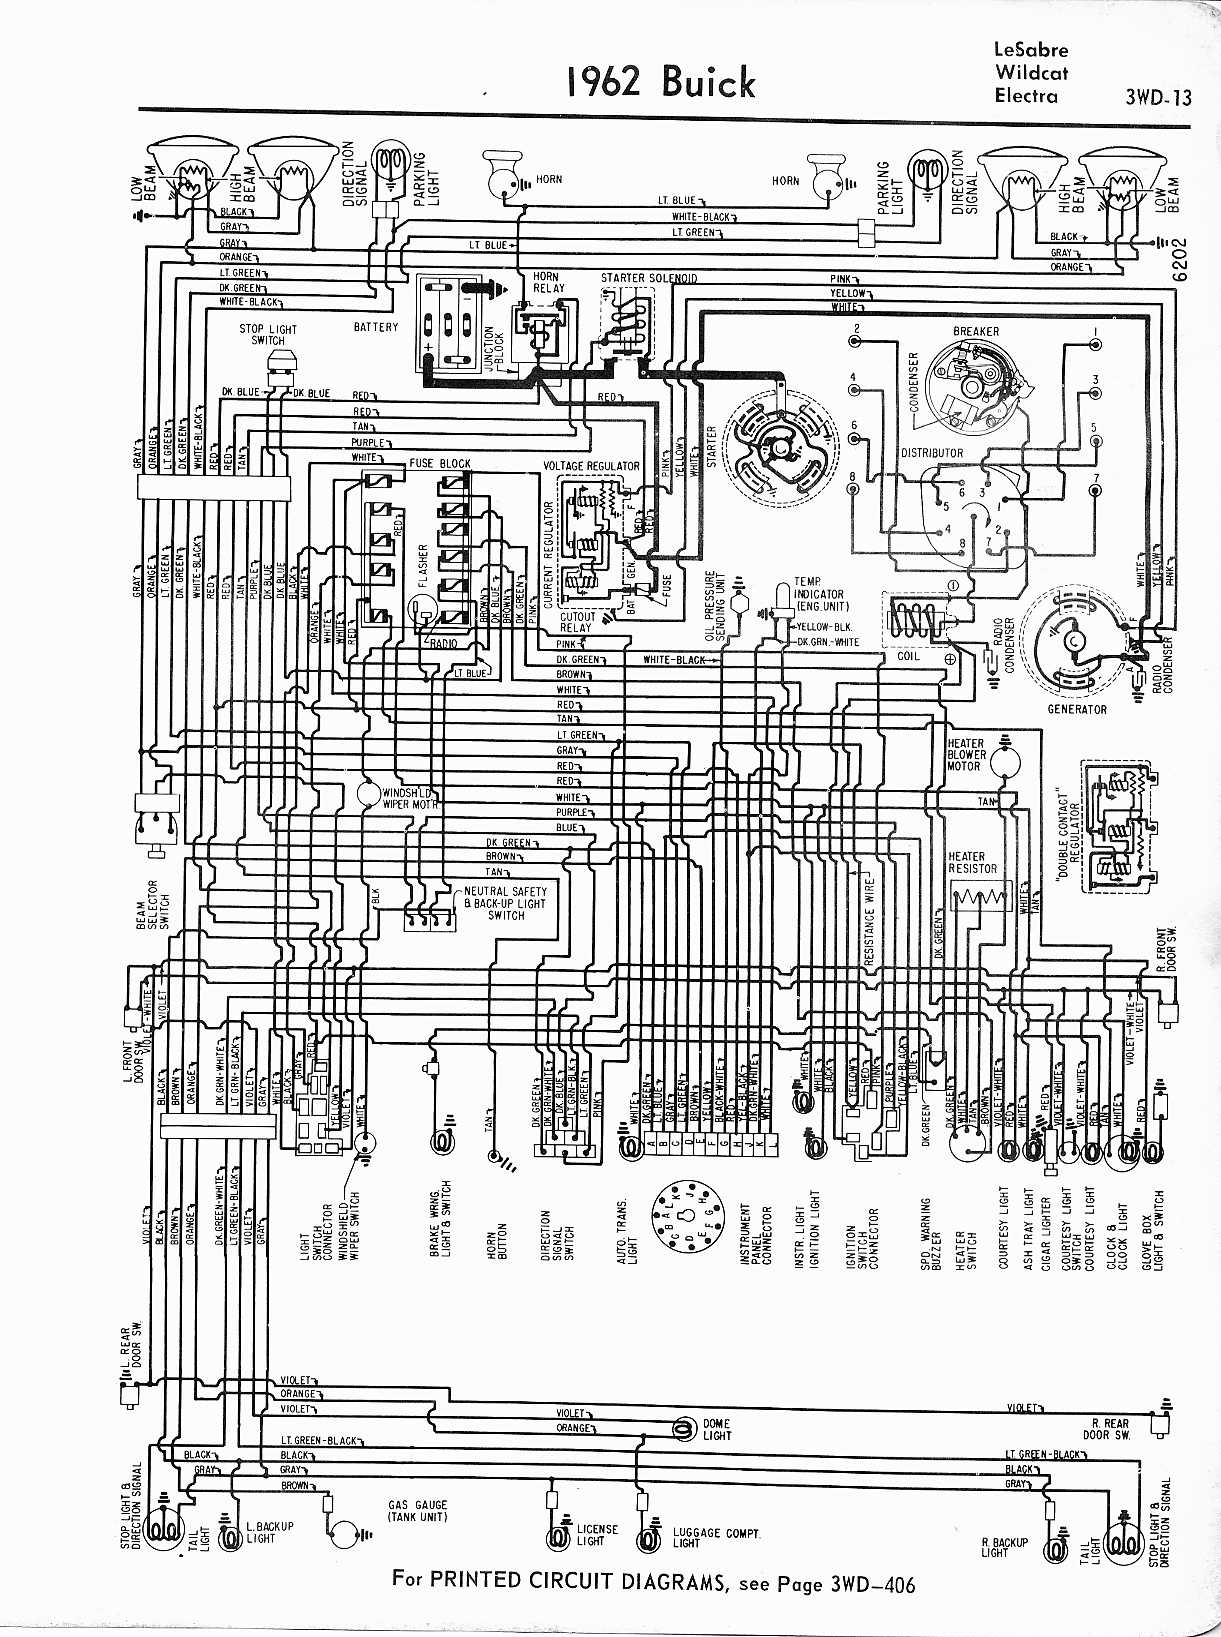 1973 Buick Lesabre Fuse Box Worksheet And Wiring Diagram 94 1967 Electra Diagrams Rh Casamario De 2003